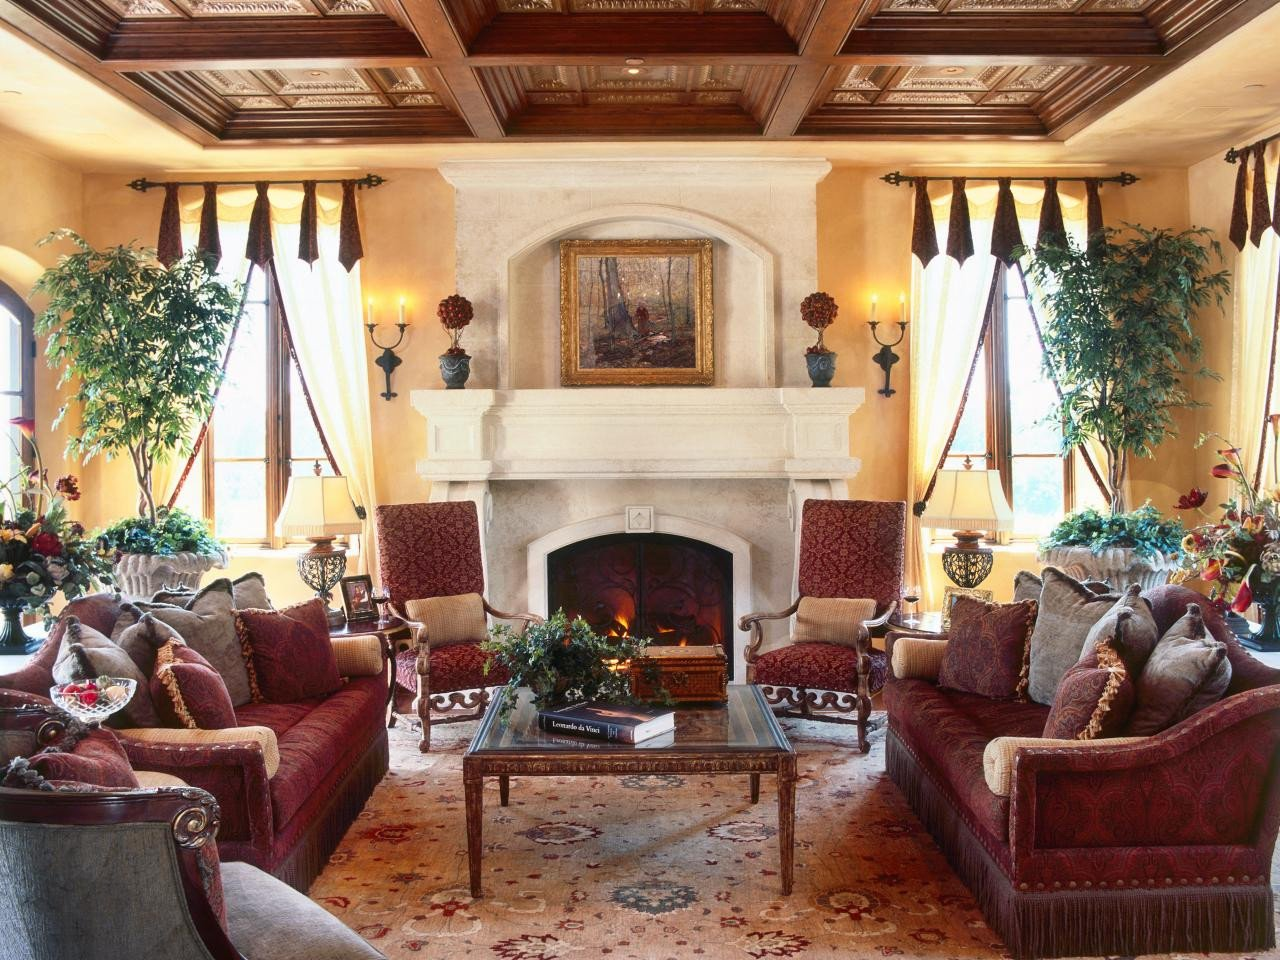 Italian Living Room Decorating Ideas Unique Old World Design Ideas Interior Design Styles and Color Schemes for Home Decorating